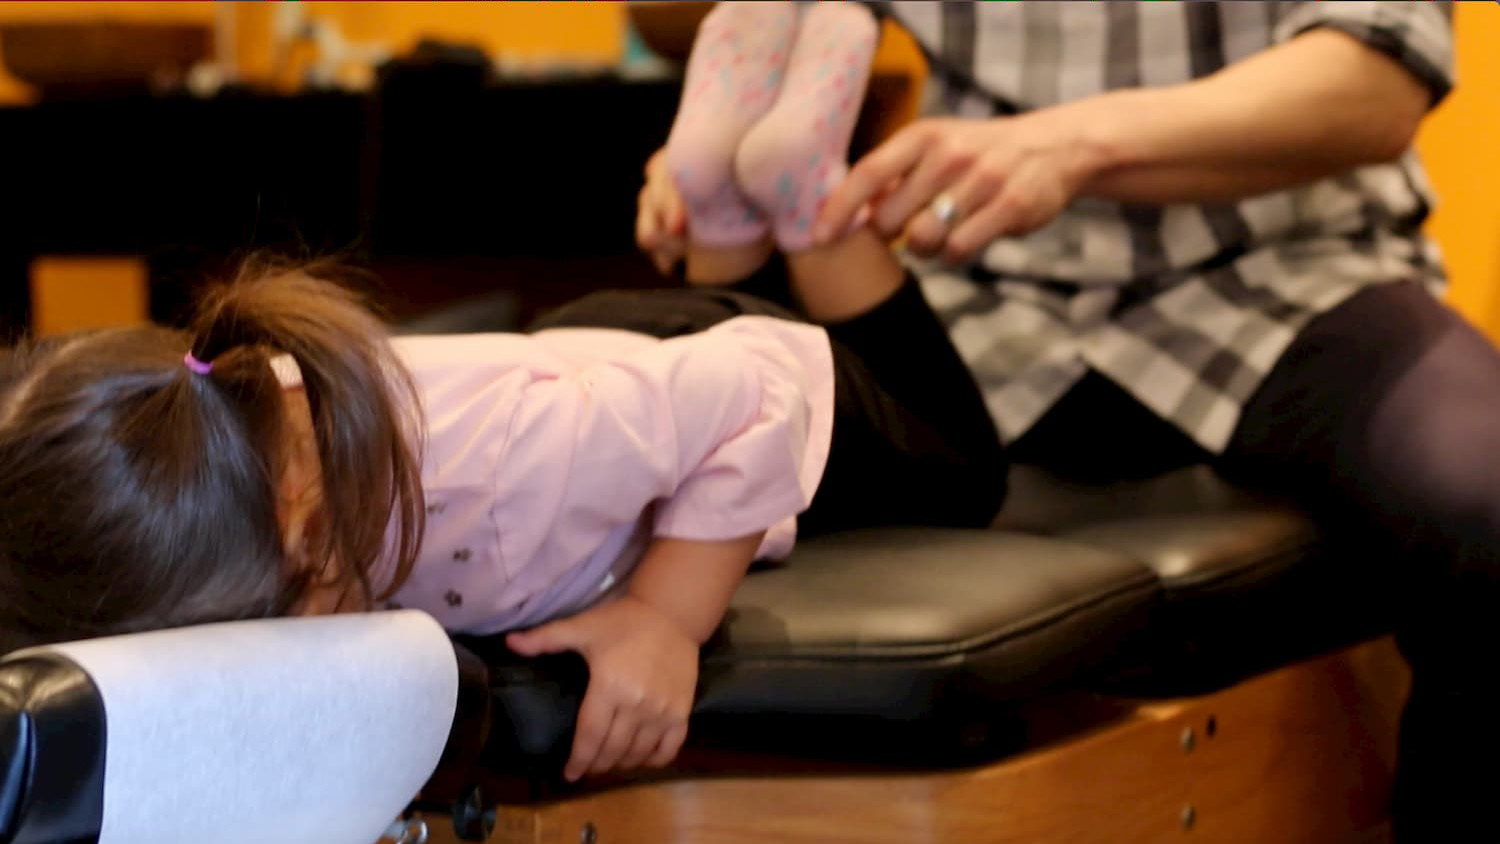 Pediatrics - As children grow their nervous system develops faster than any other time in life. Caring for the health and function of the nervous system is paramount for proper development. Gentle adjustments for kids have been shown to improve digestion, immune system function and sensory processing as well as reduce stress and anxiety.